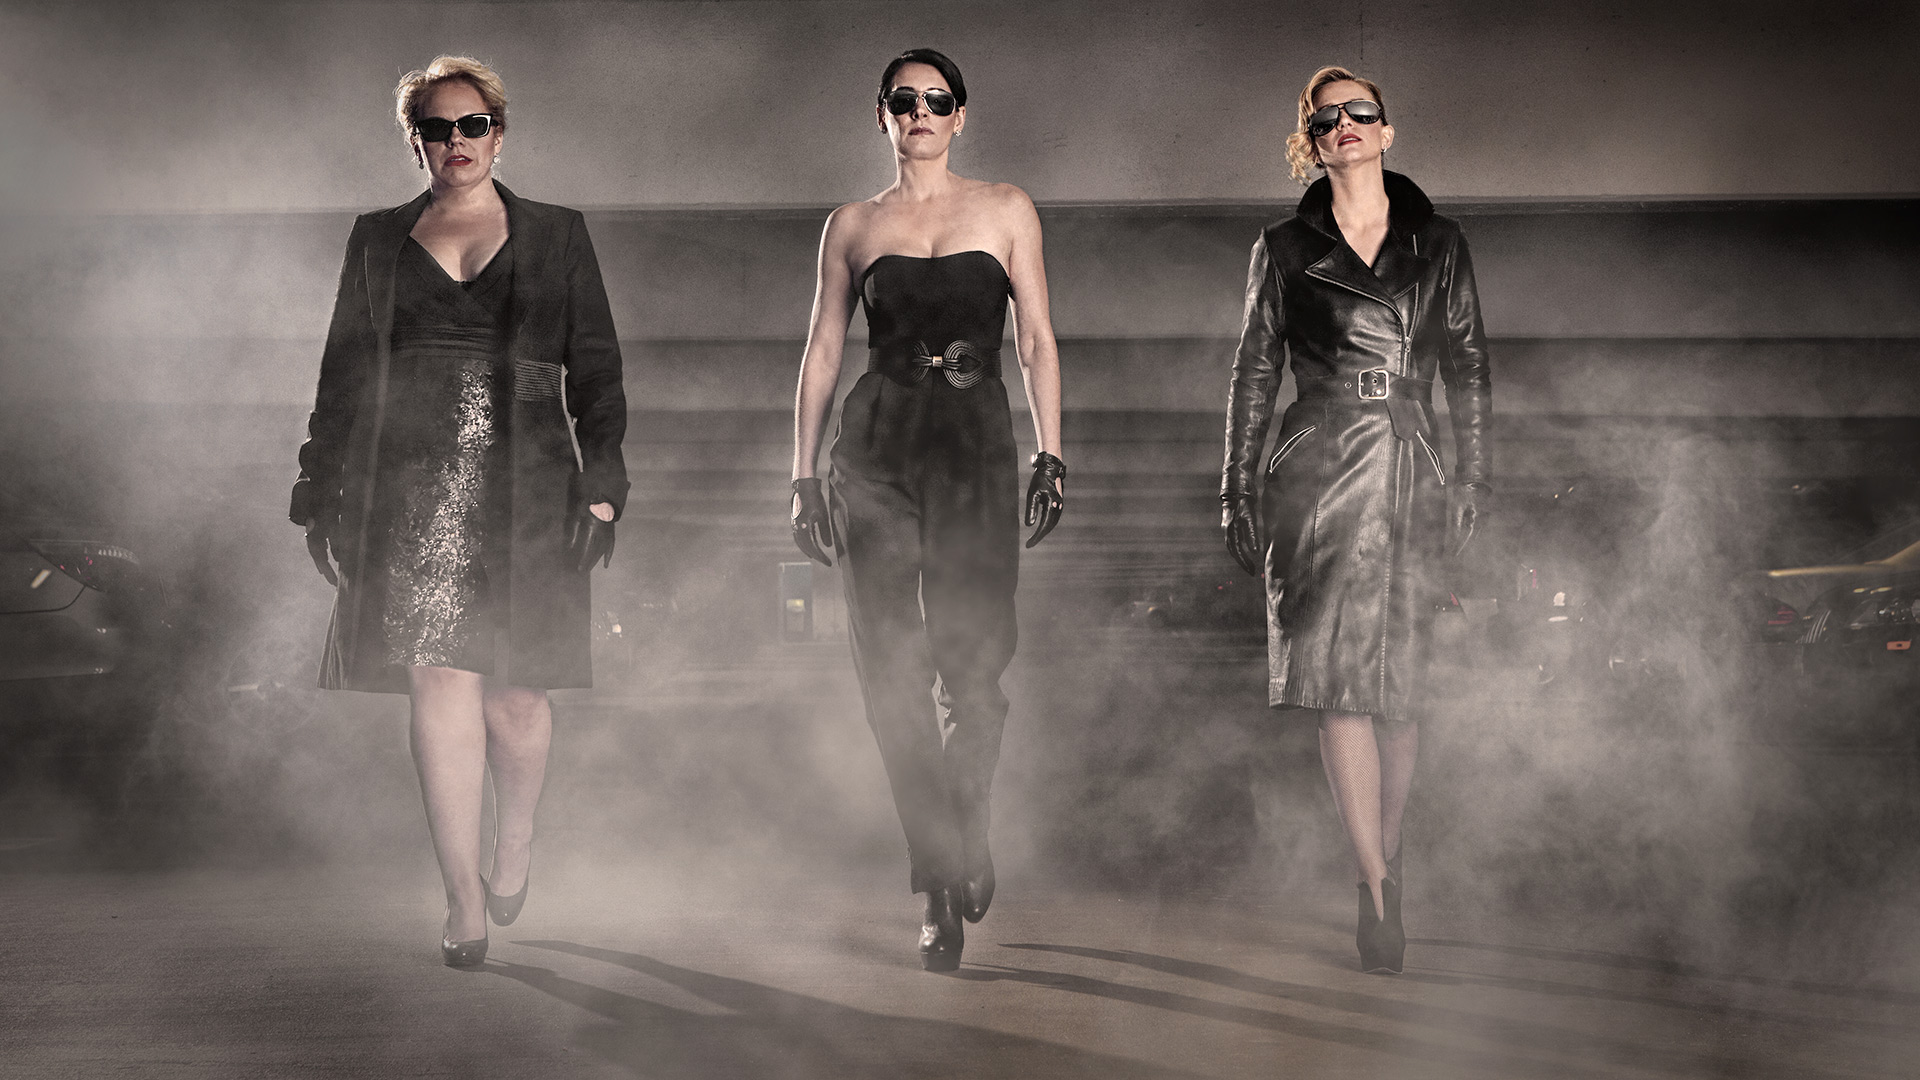 Kirsten Vangsness, Paget Brewster, and A.J. Cook as secret agents